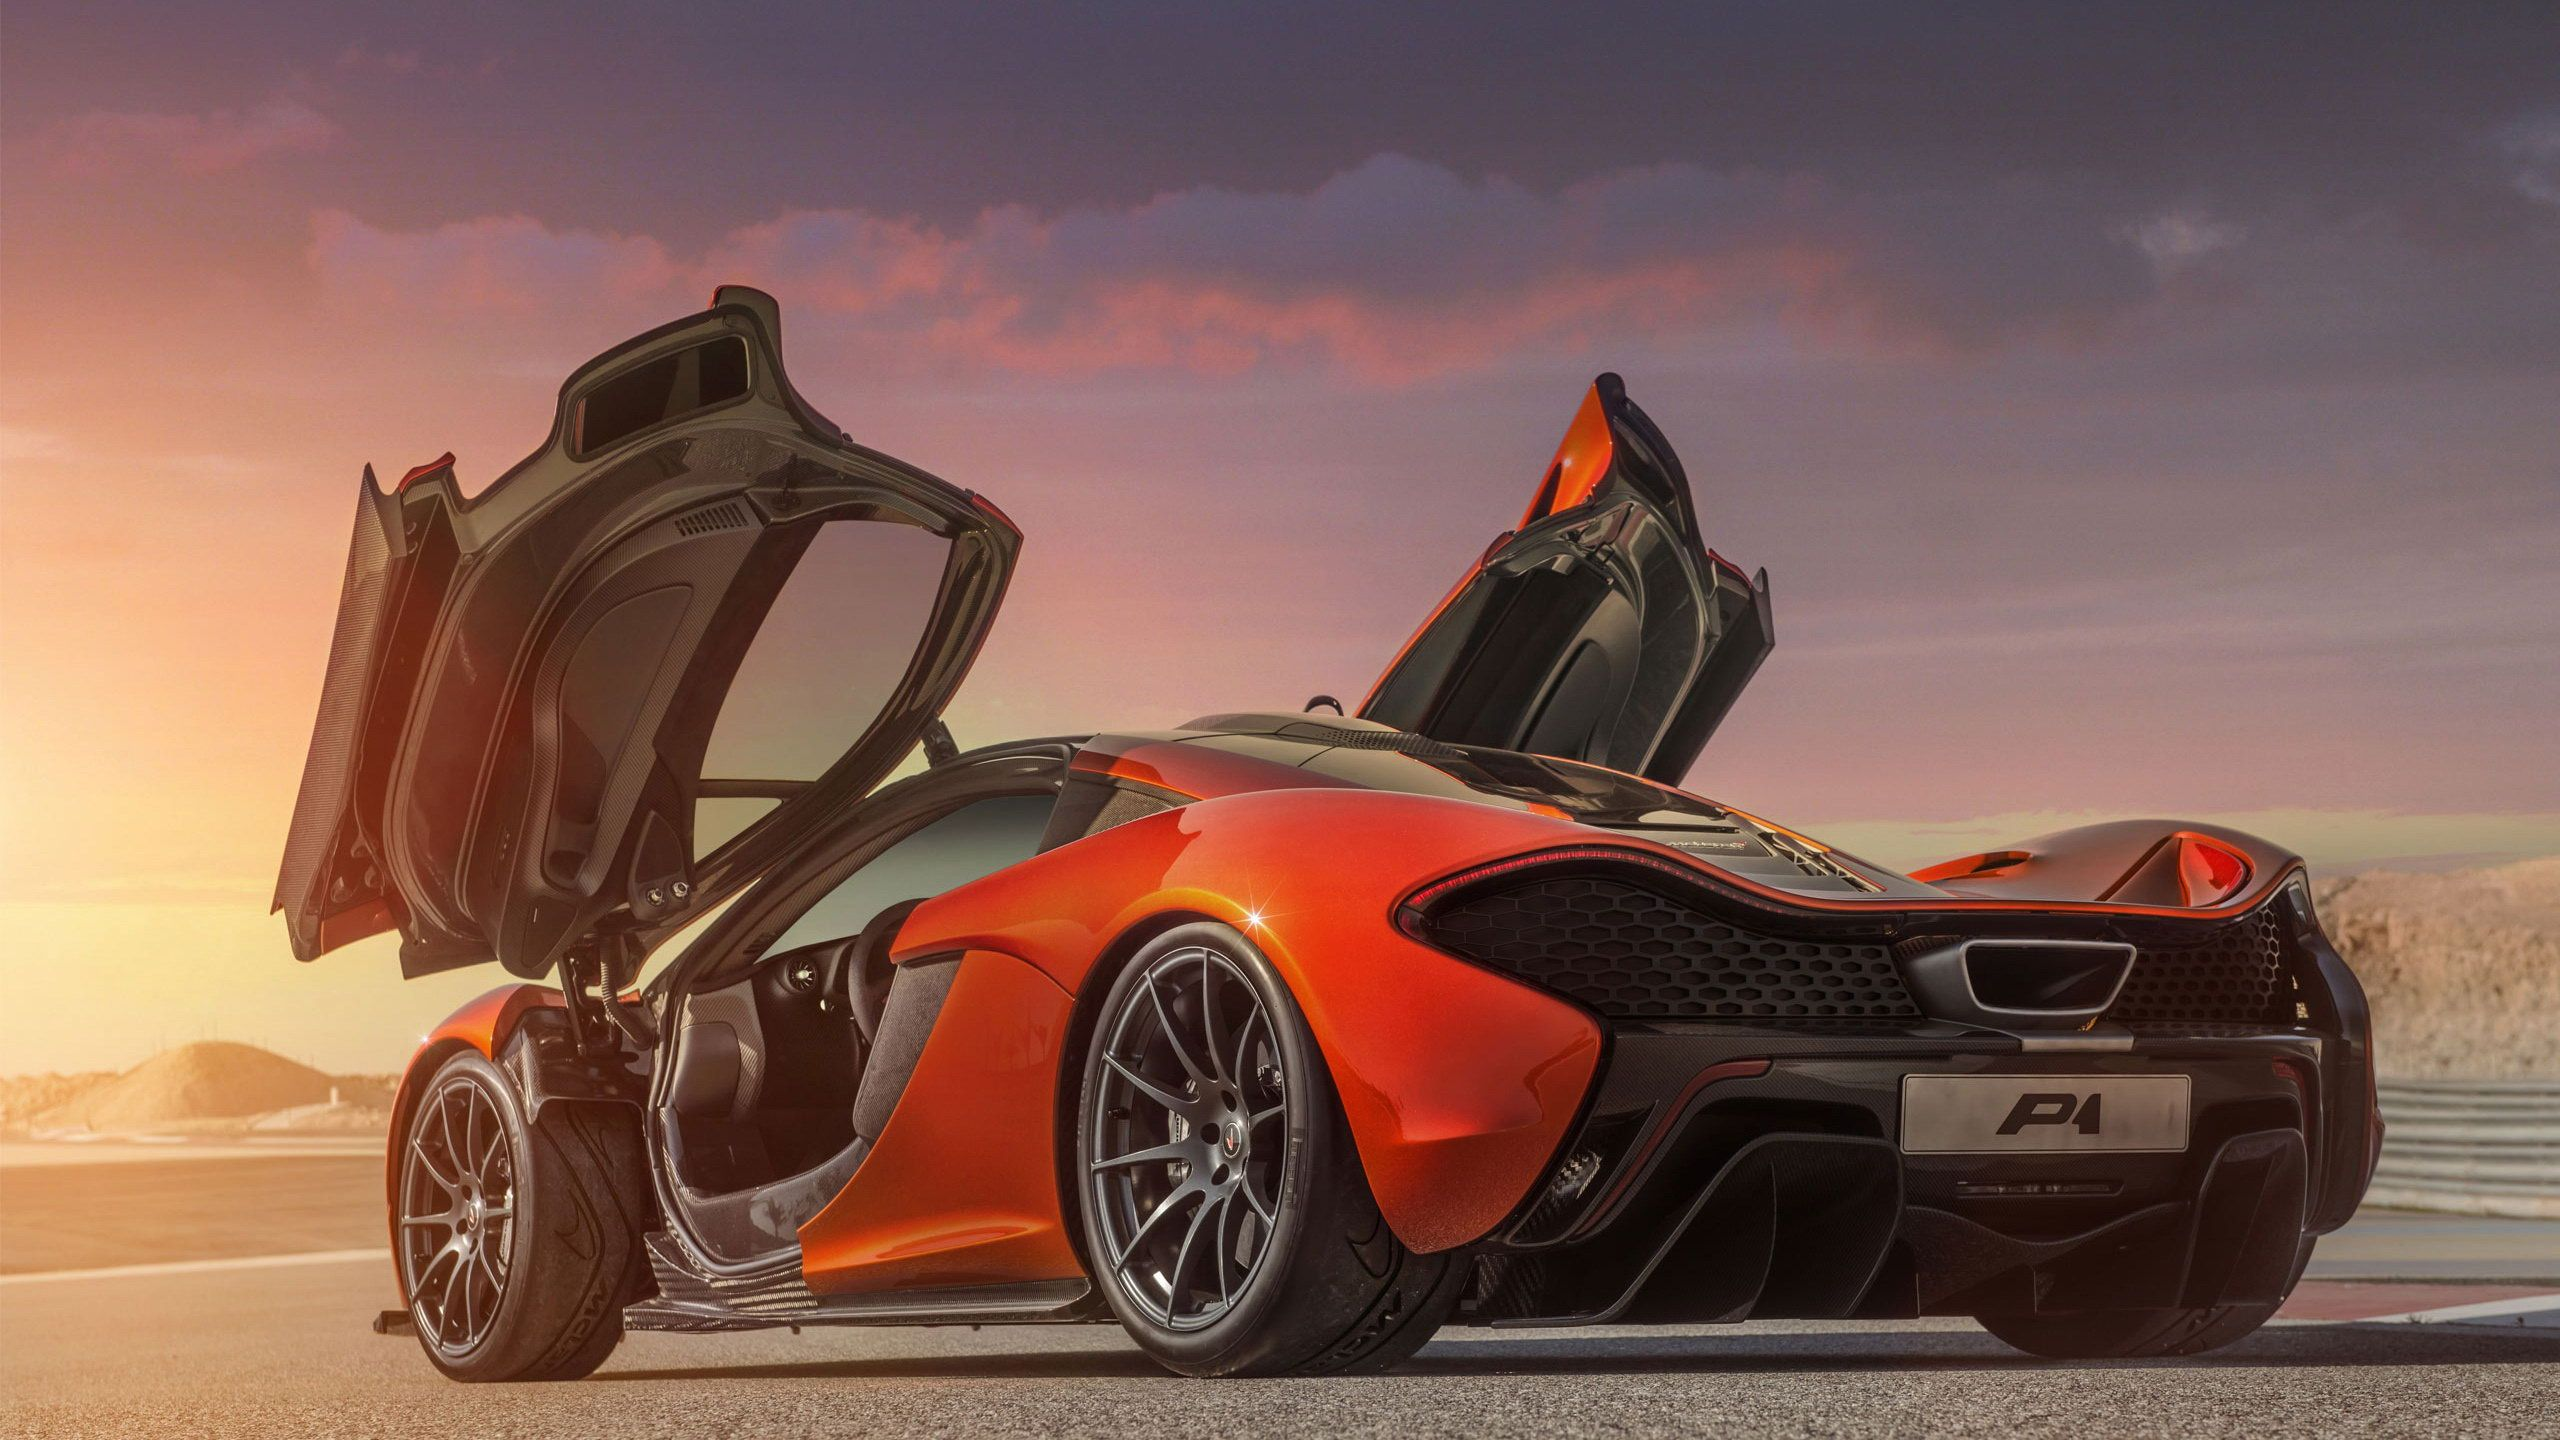 Call Wallpapers Download These Speedy 49 Car Wallpaper For